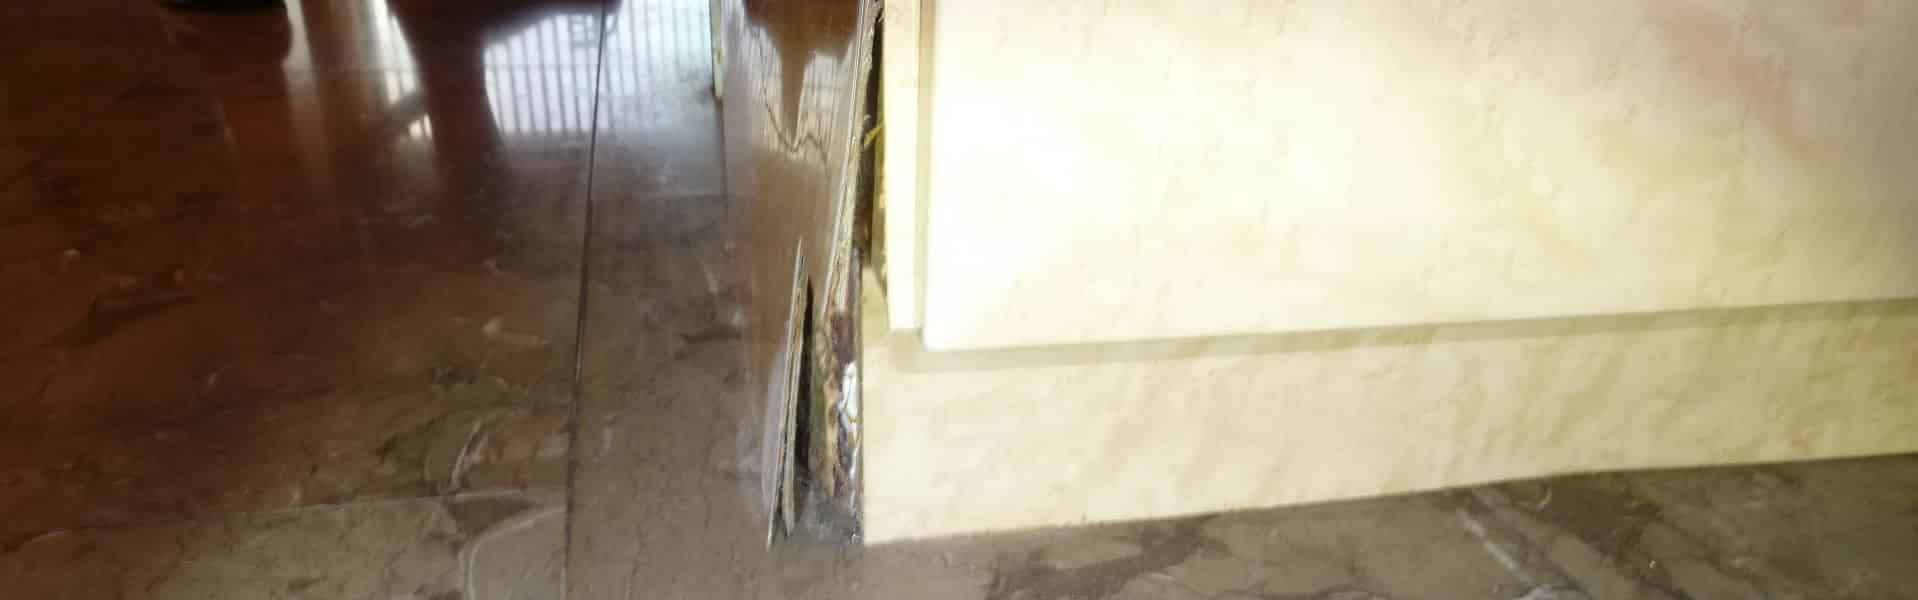 Water damage claims reliant adjusters group 27 apr water damage from polybutylene pipes doublecrazyfo Choice Image